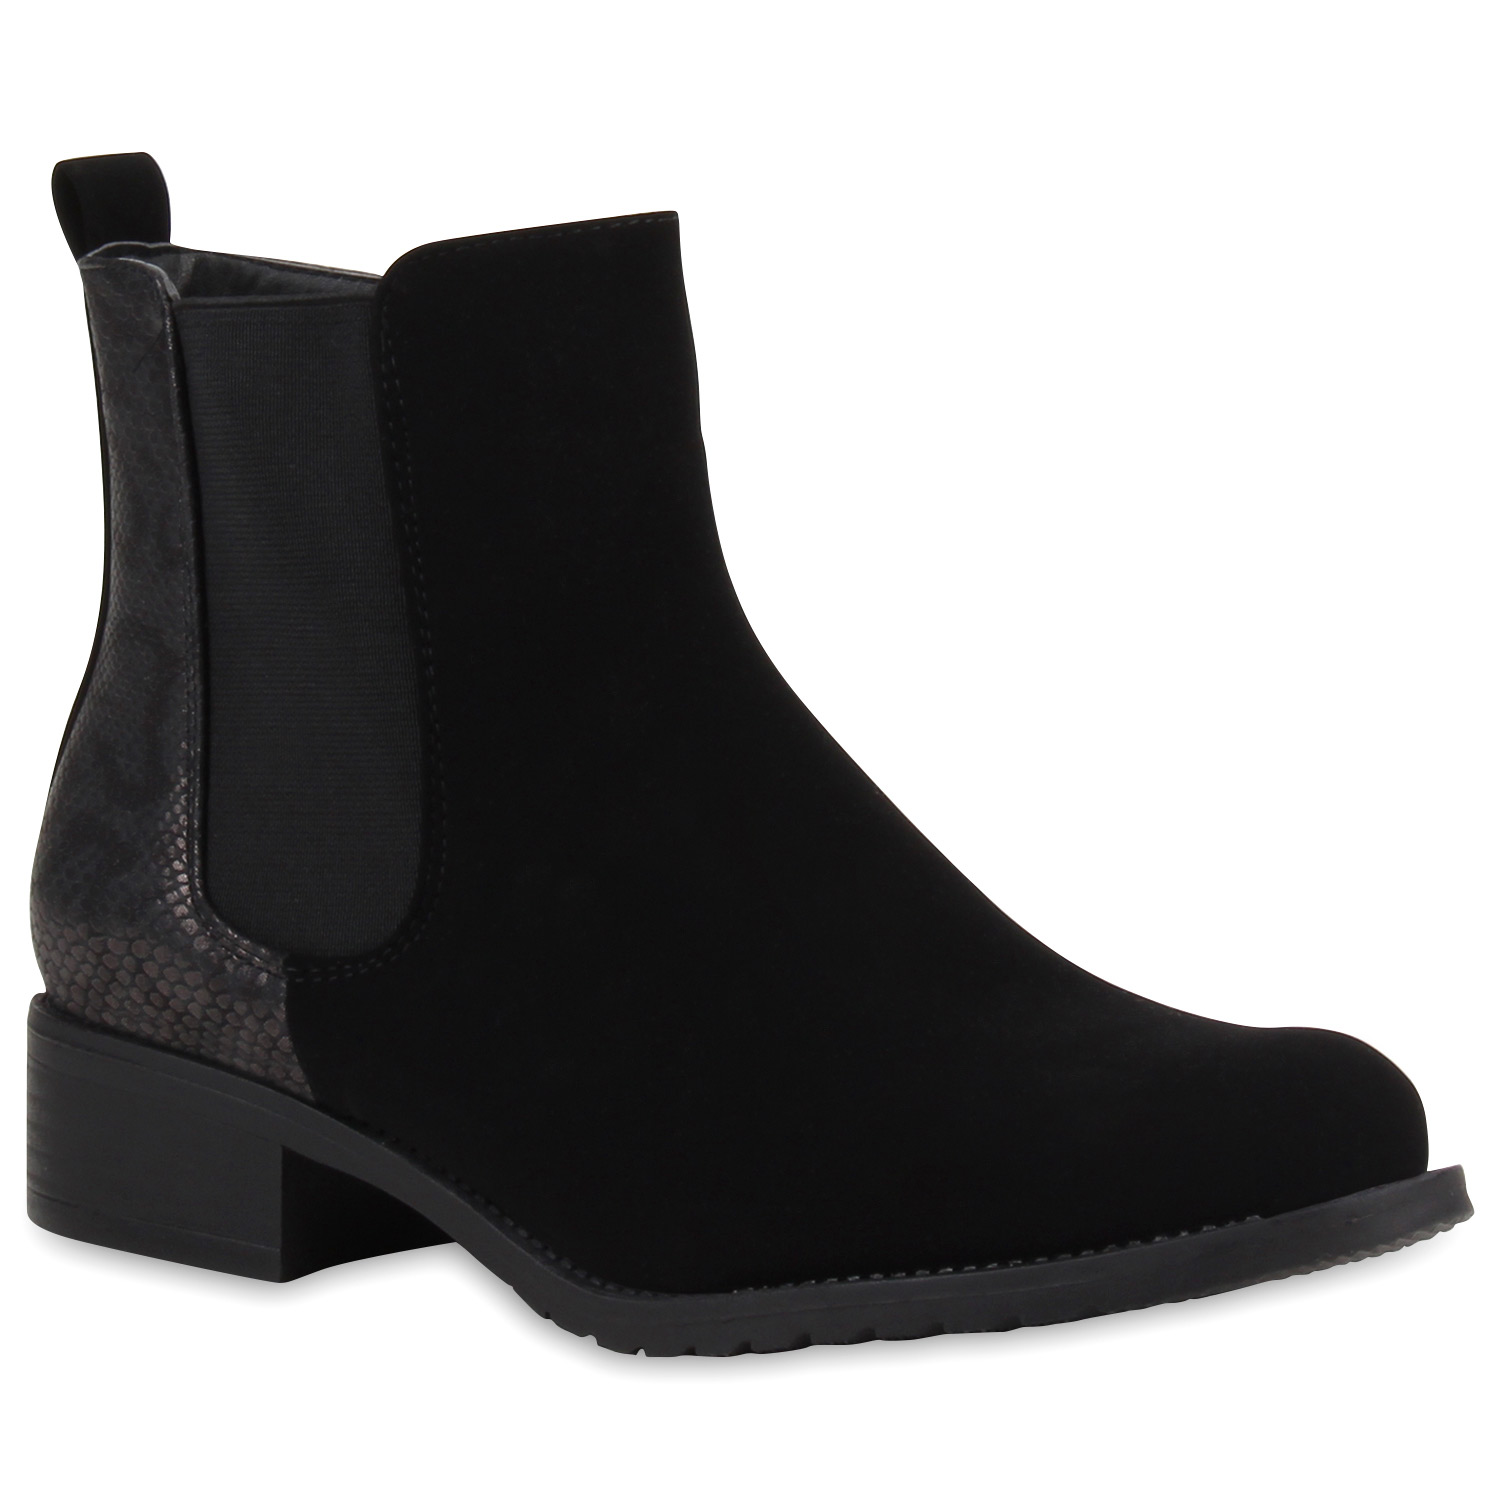 gef tterte damen stiefeletten chelsea boots schwarz 77736 ebay. Black Bedroom Furniture Sets. Home Design Ideas